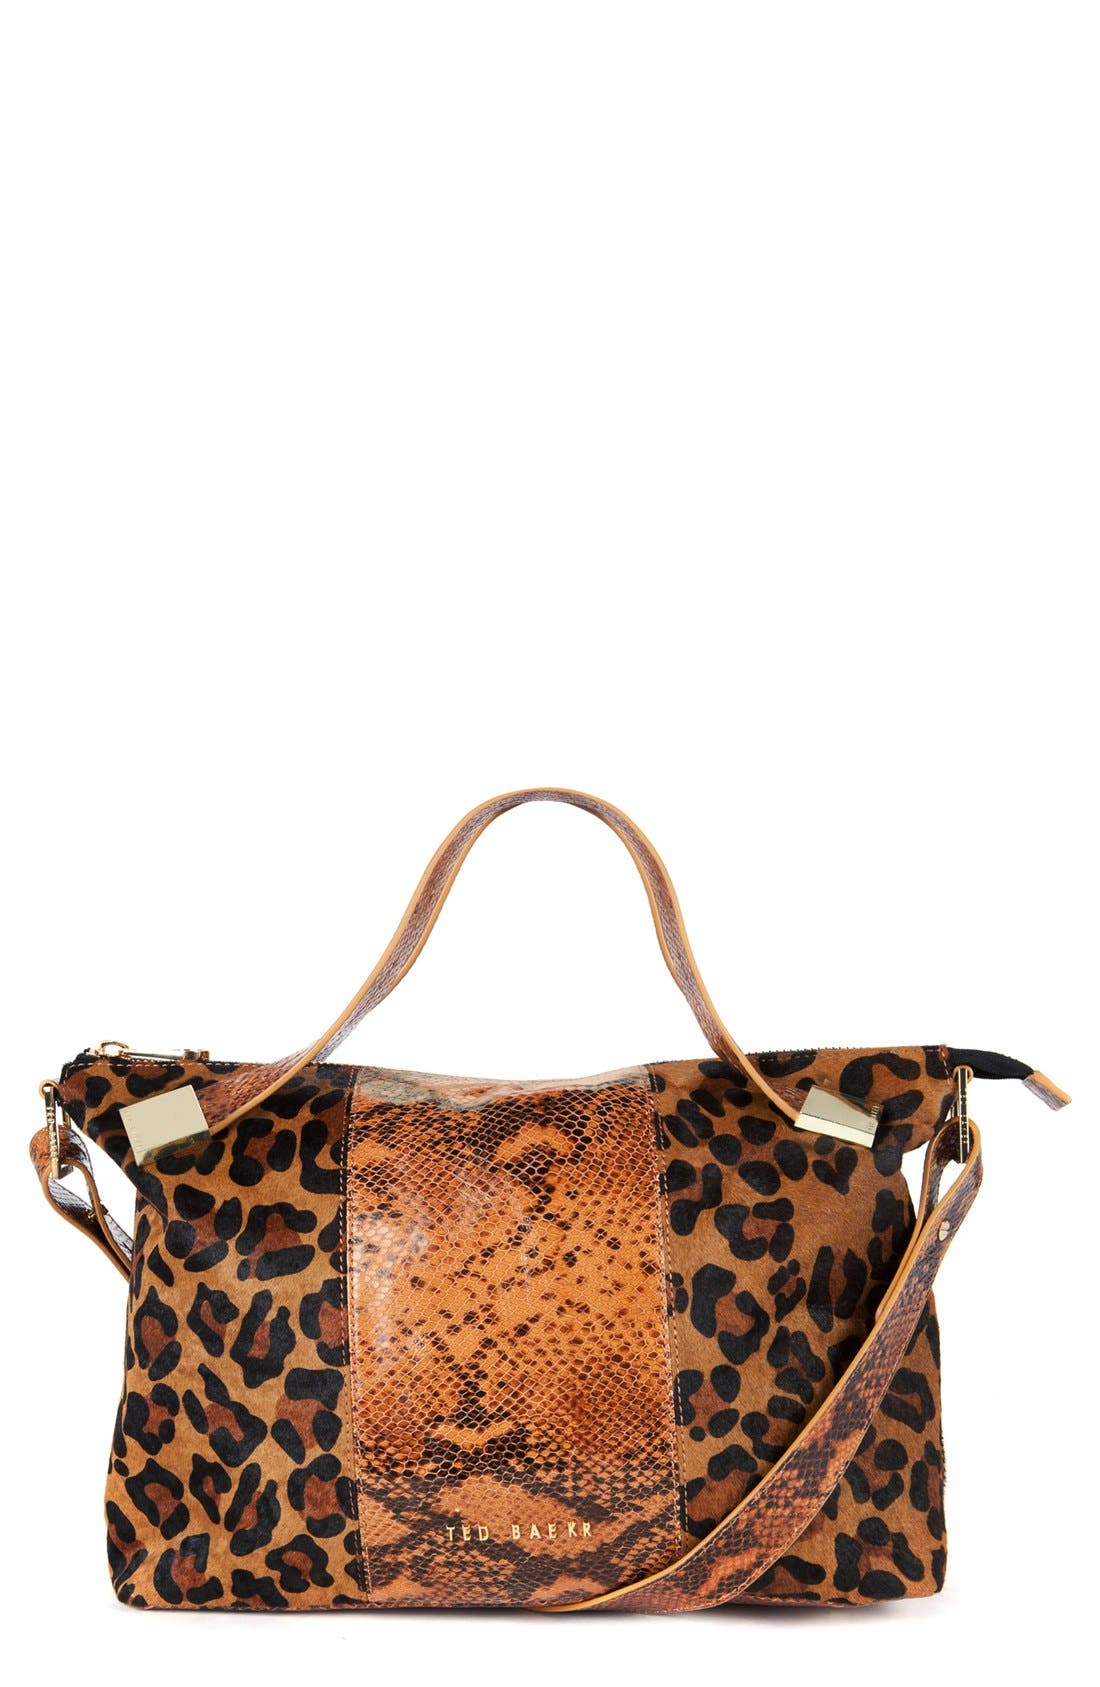 Alternate Image 1 Selected - Ted Baker London 'Autumny' Tote